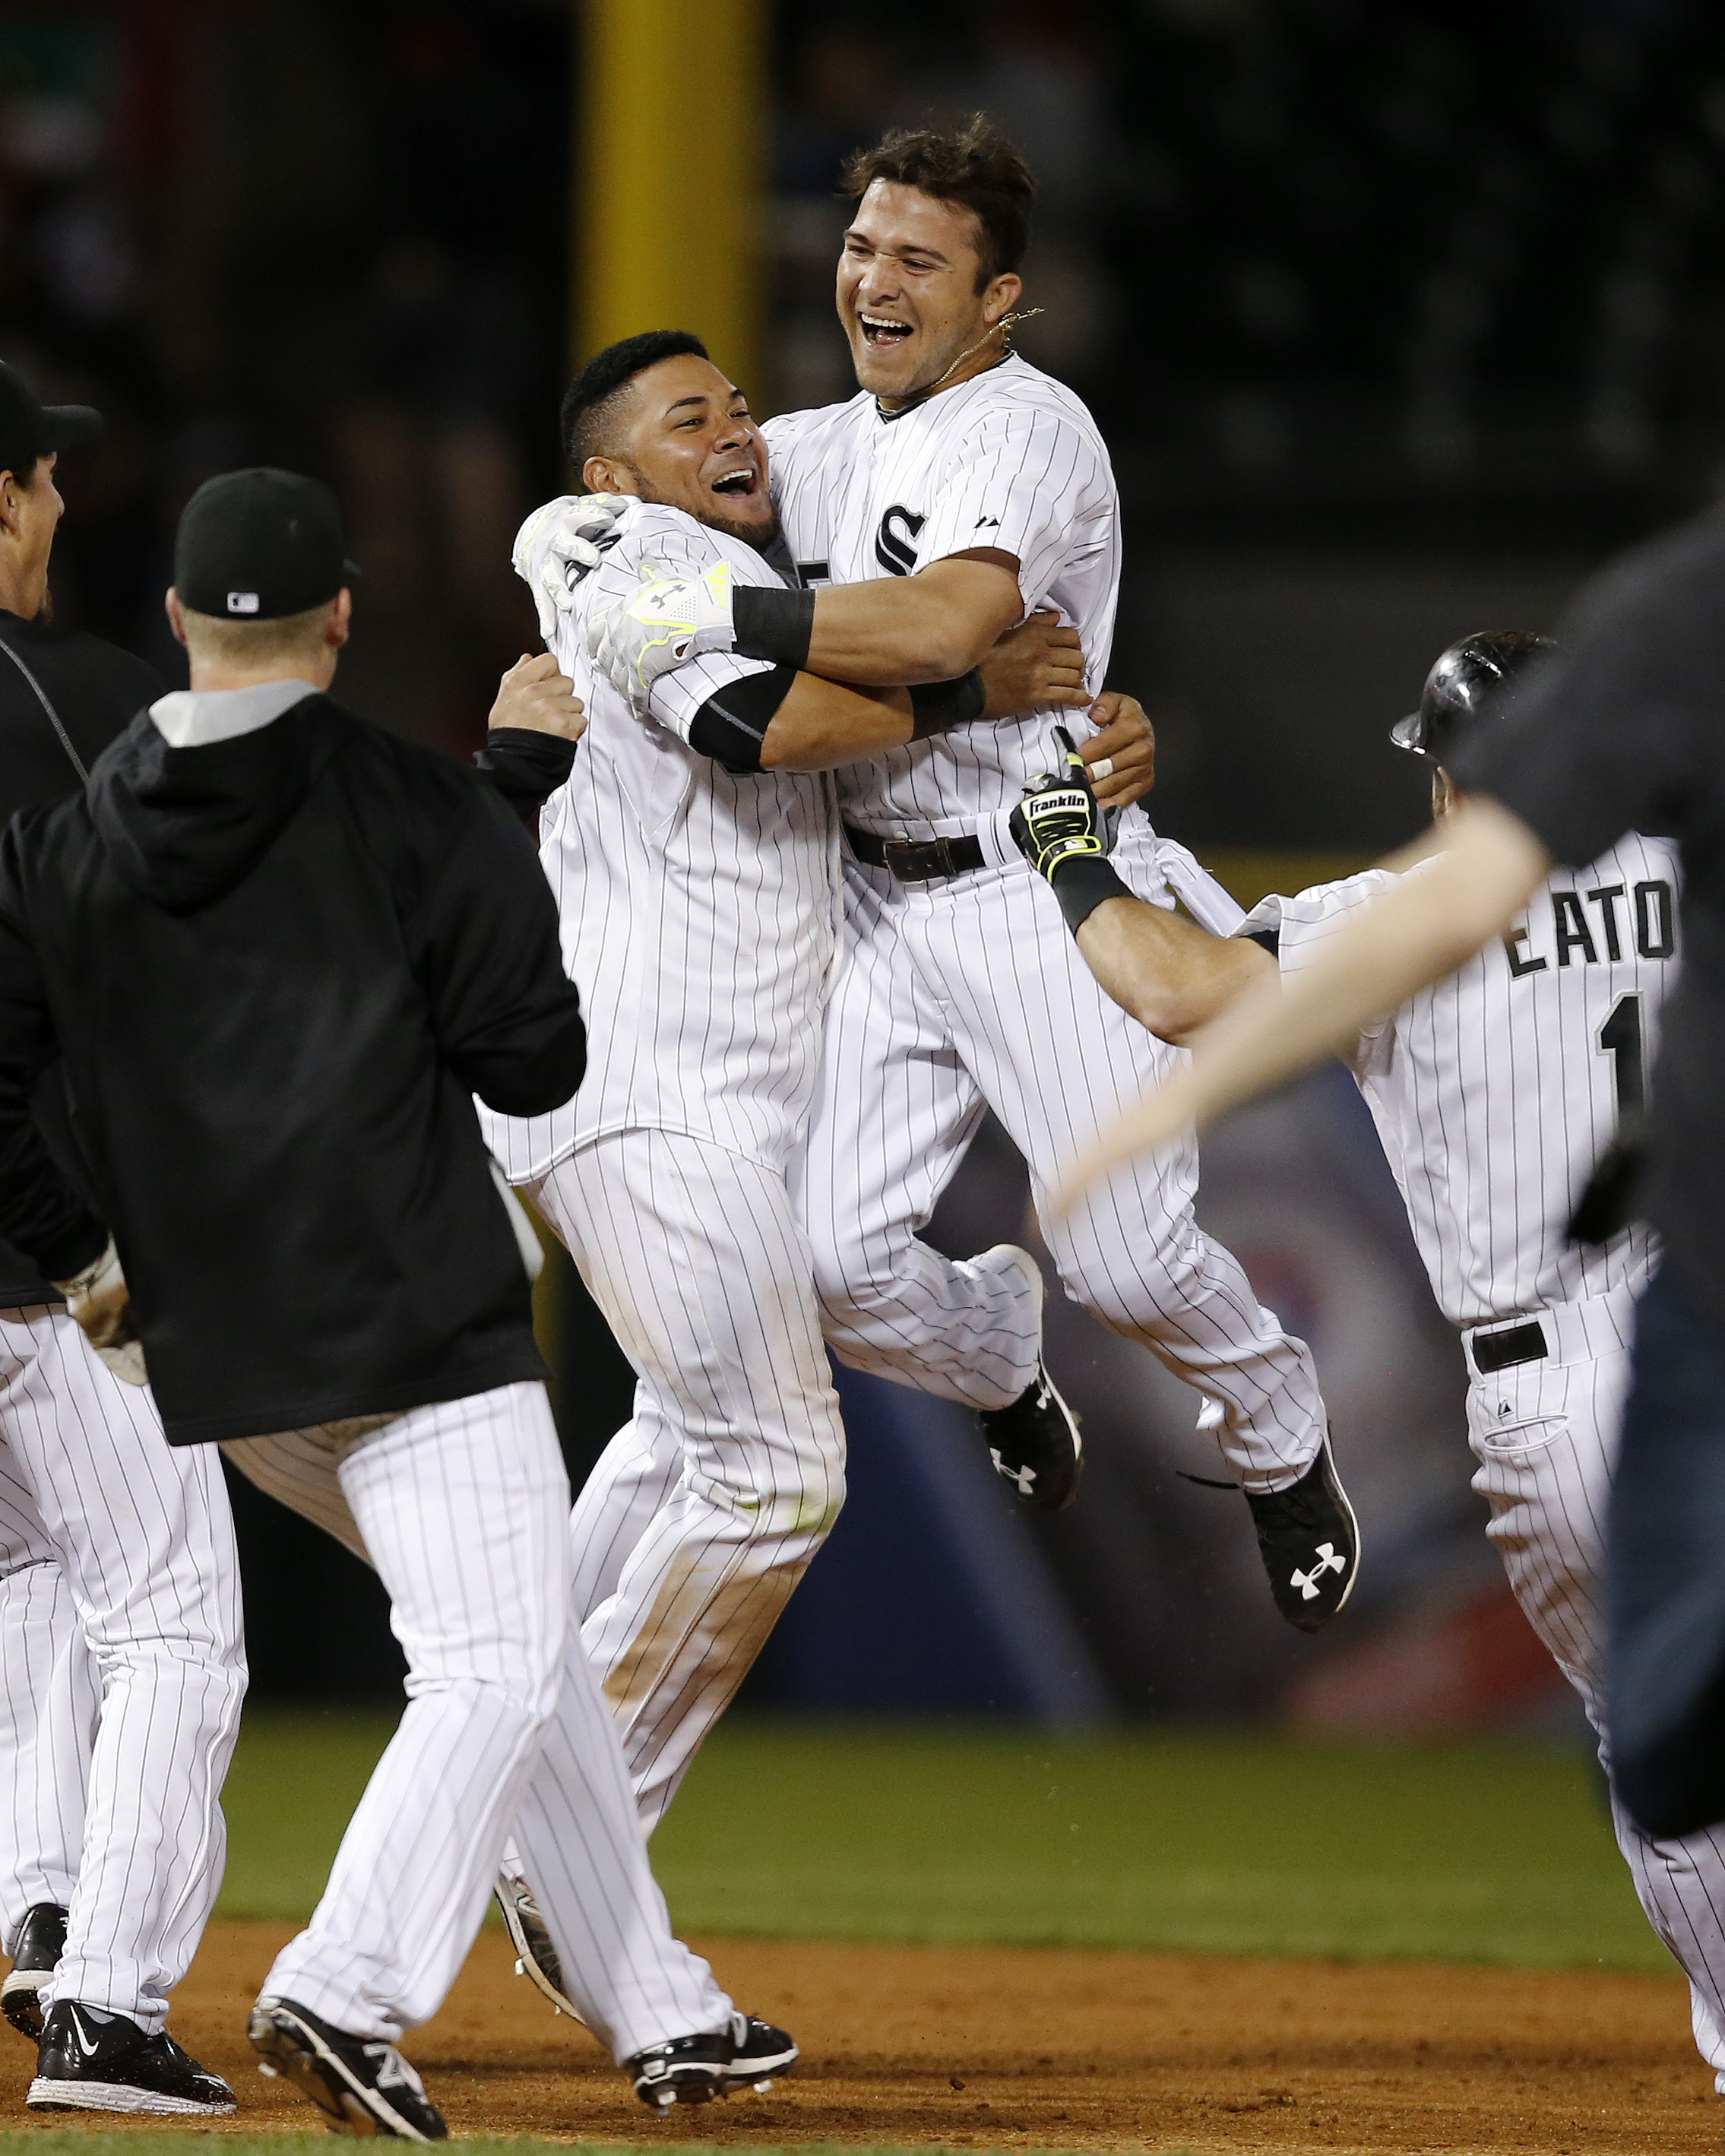 Chicago White Sox's Carlos Sanchez, right, celebrates with Melky Cabrera, left, after hitting in the game-winning run during the tenth inning of a baseball game against the Cleveland Indians Monday, May 18, 2015, in Chicago. The Chicago White Sox won 2-1.